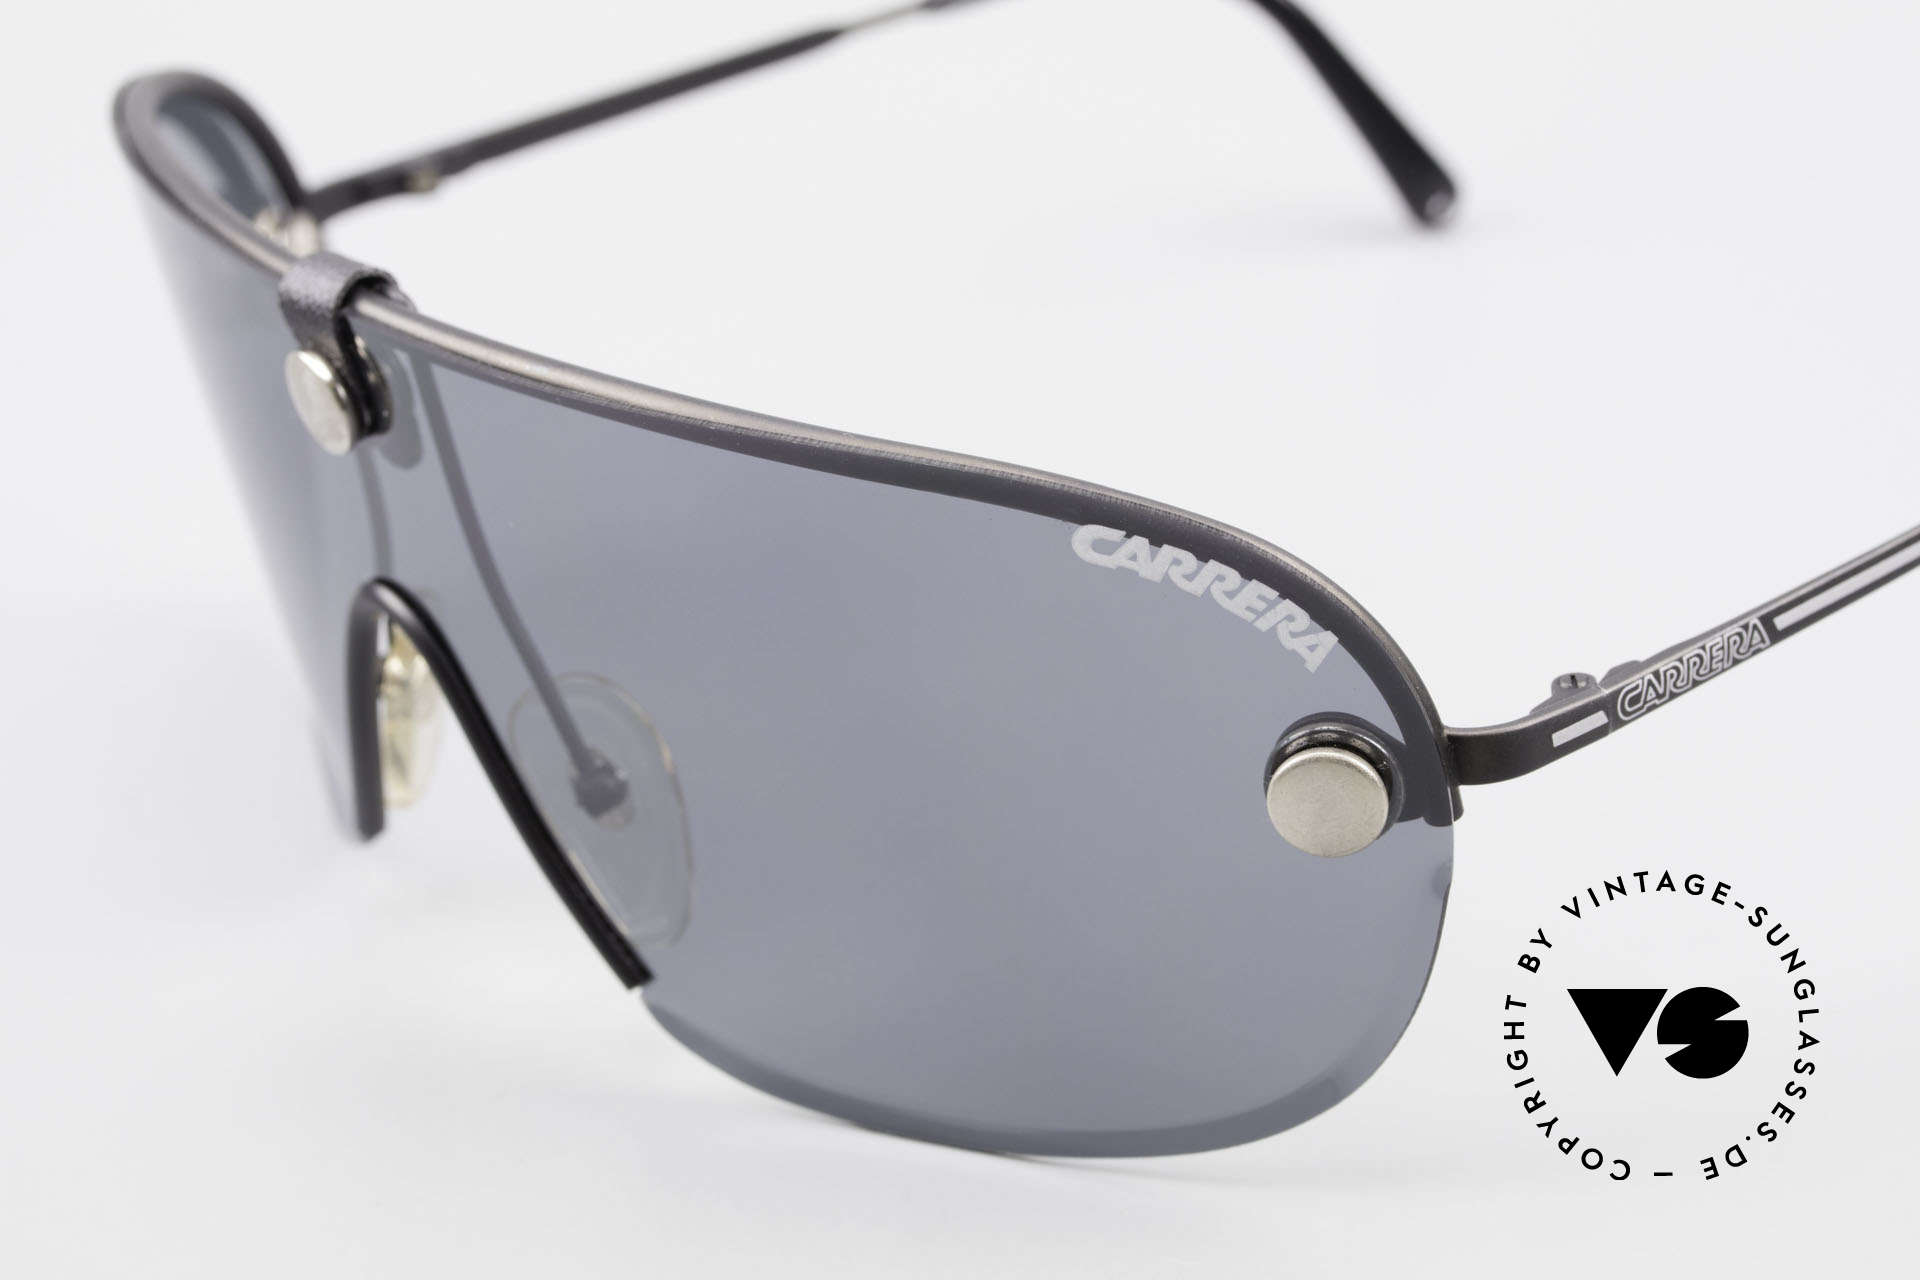 Carrera 5418 All Weather Shades Polarized, gray (POLARIZED) anti-relection for high sun-intensity, Made for Men